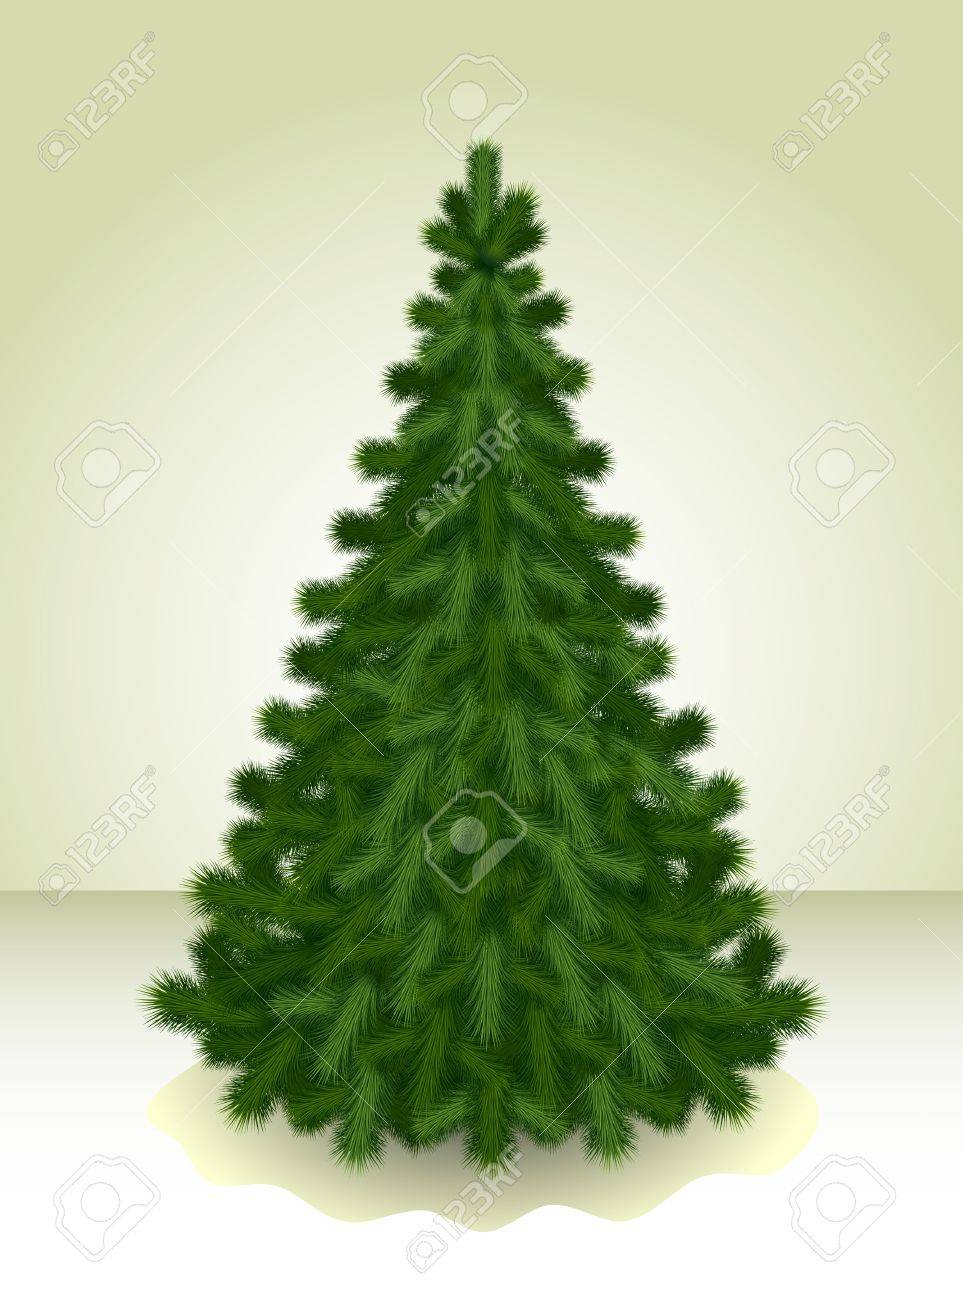 Illustration of the Сhristmas tree ready to decorate Stock Vector - 10996728